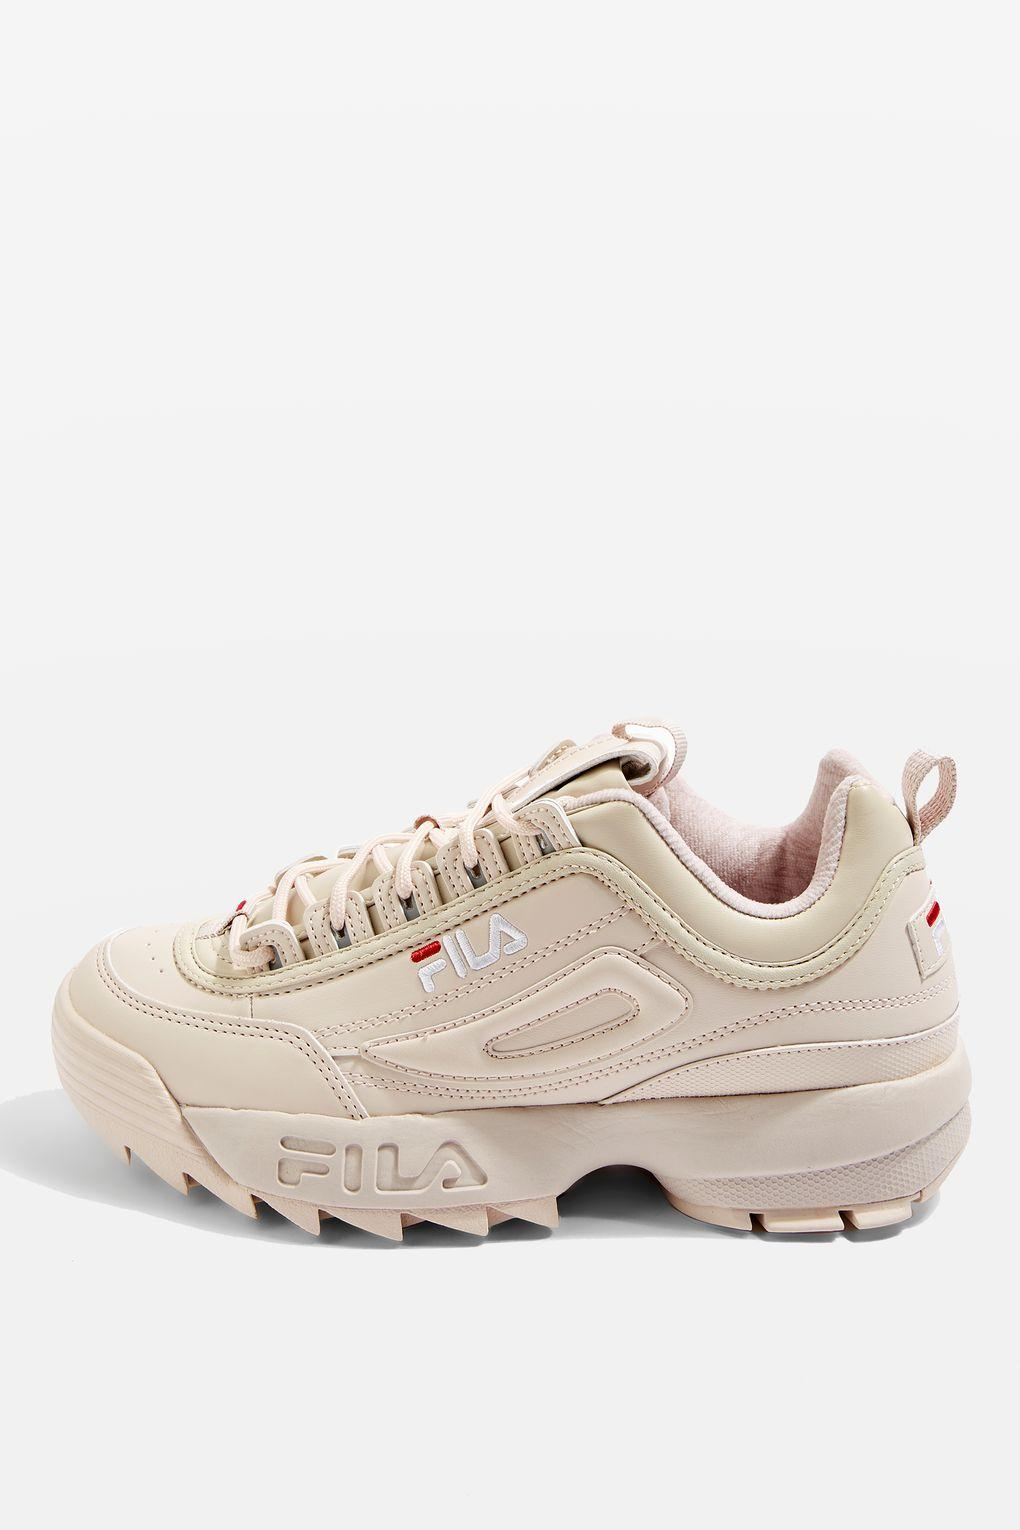 Topshop Disruptor Low Trainers By Fila In Pink Lyst